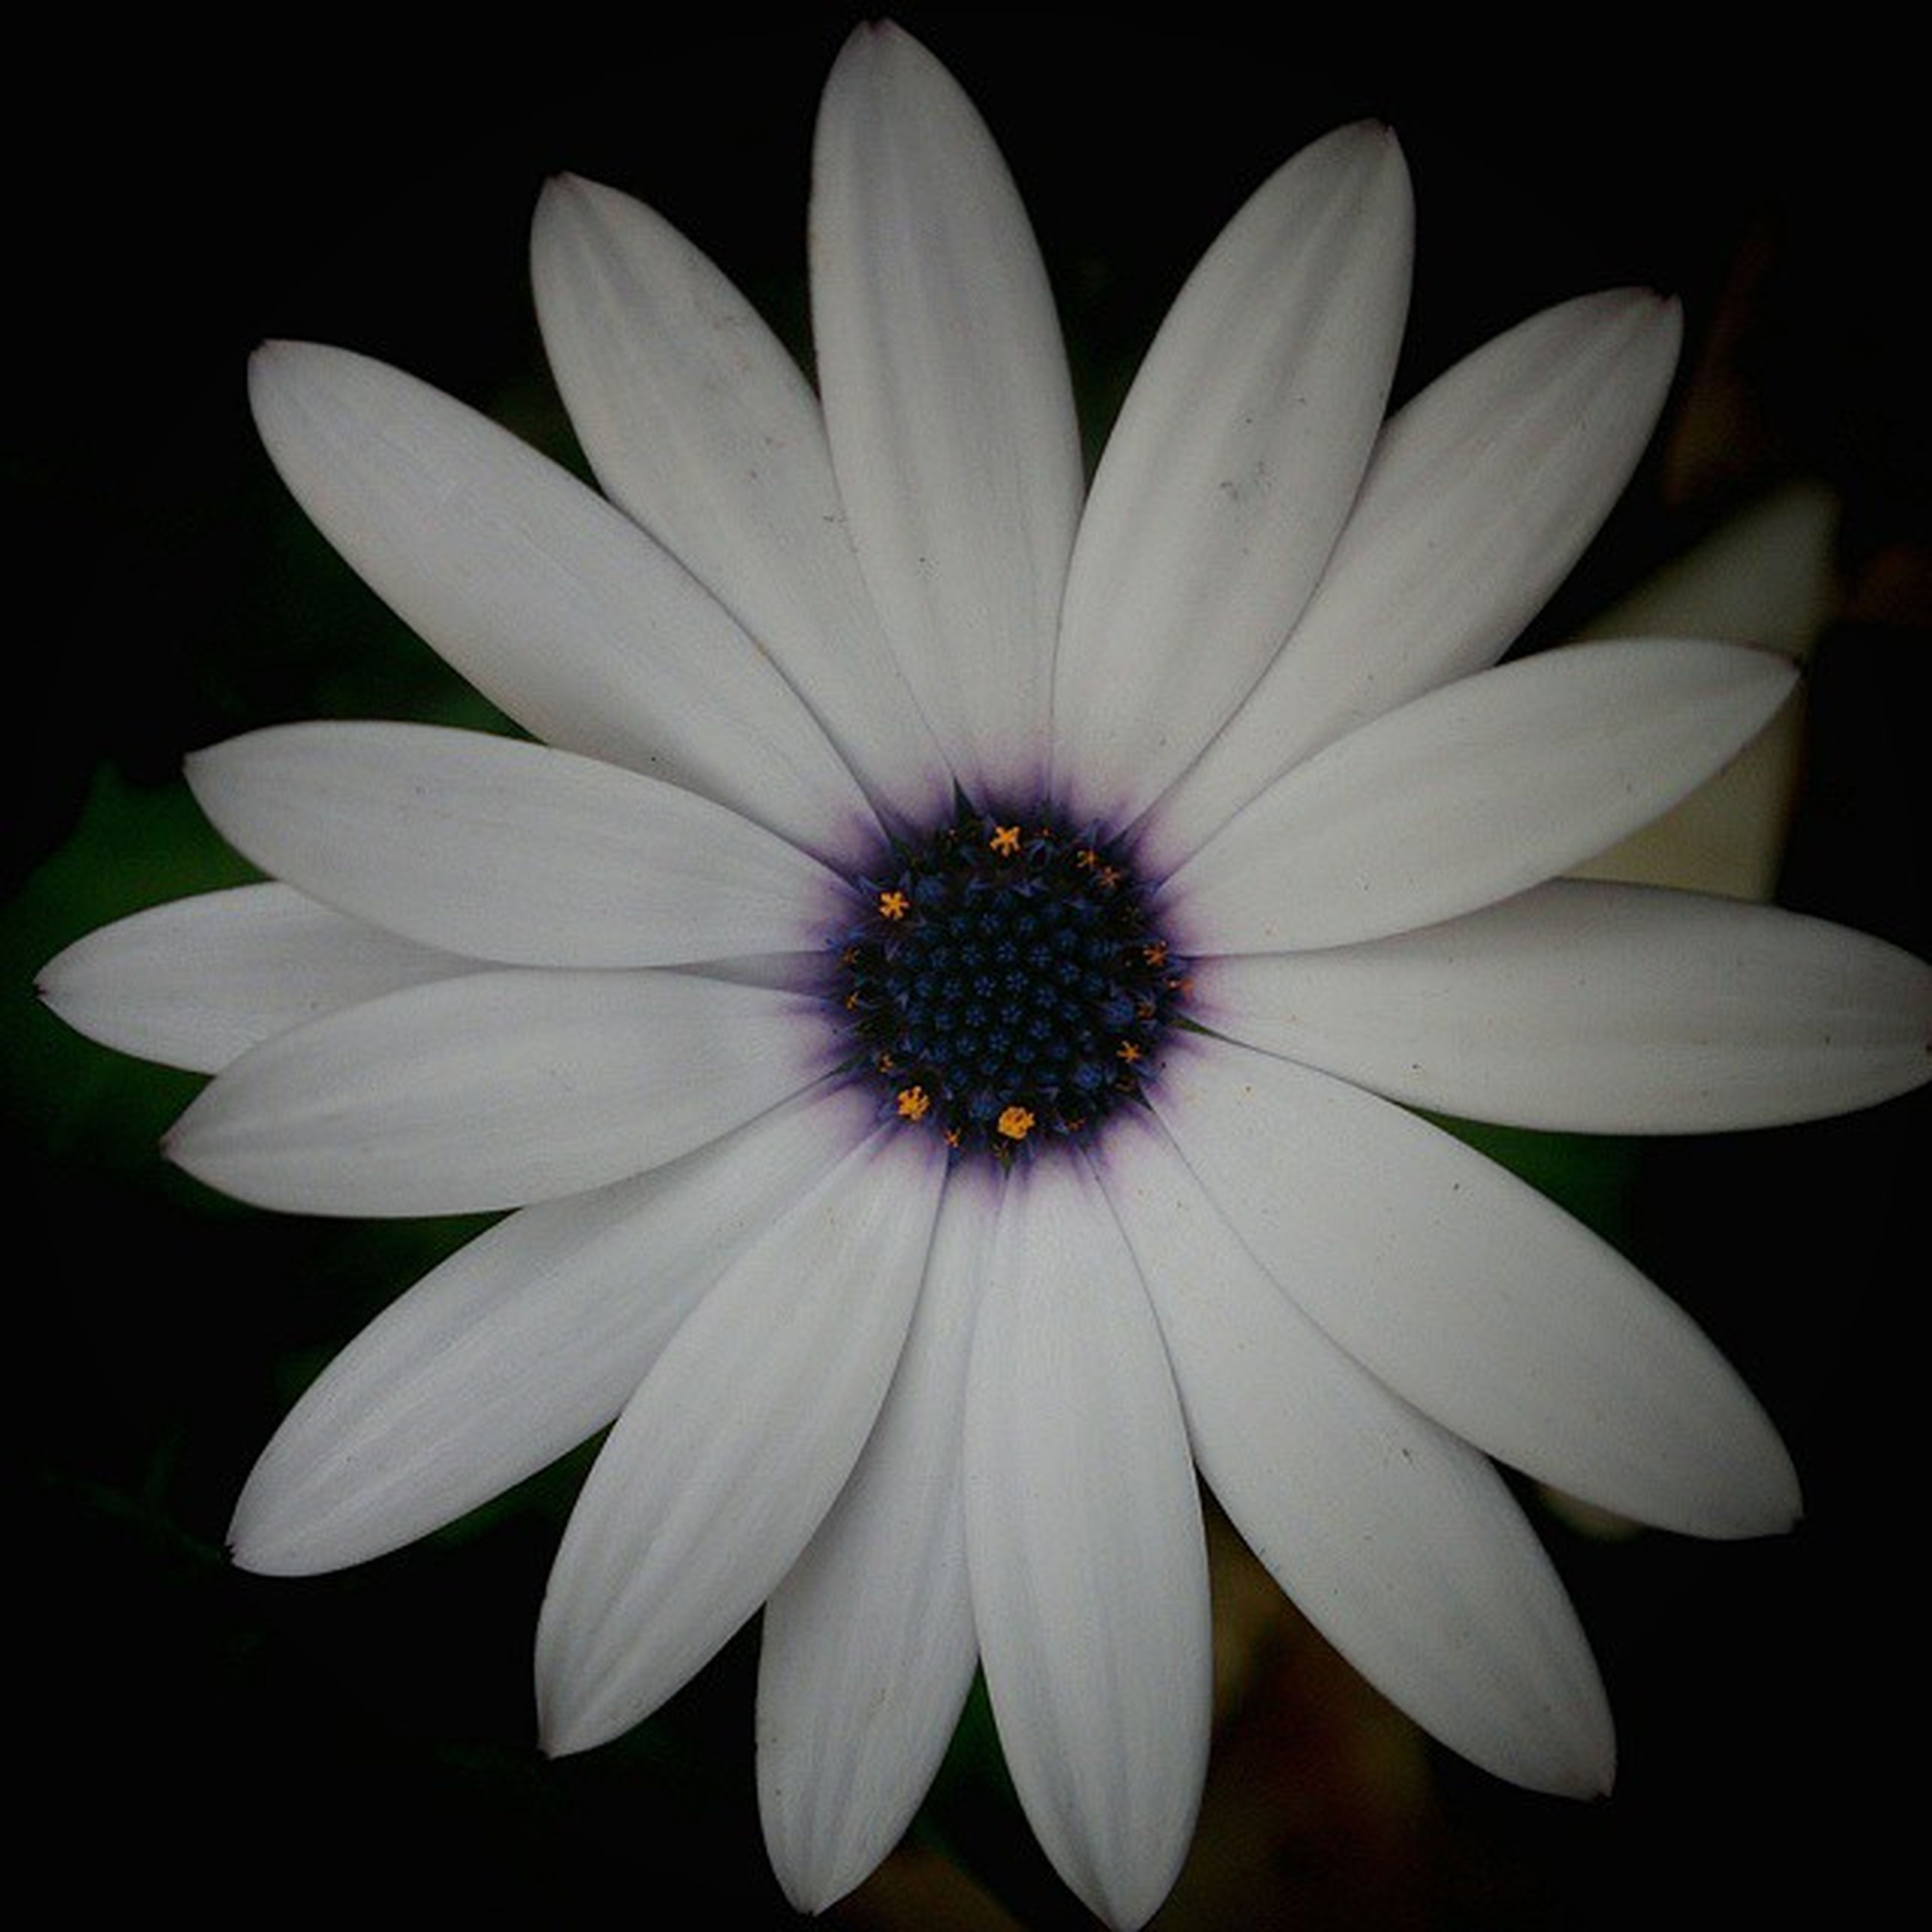 flower, petal, flower head, freshness, fragility, single flower, studio shot, beauty in nature, black background, pollen, close-up, white color, growth, nature, daisy, blooming, in bloom, no people, white, stamen